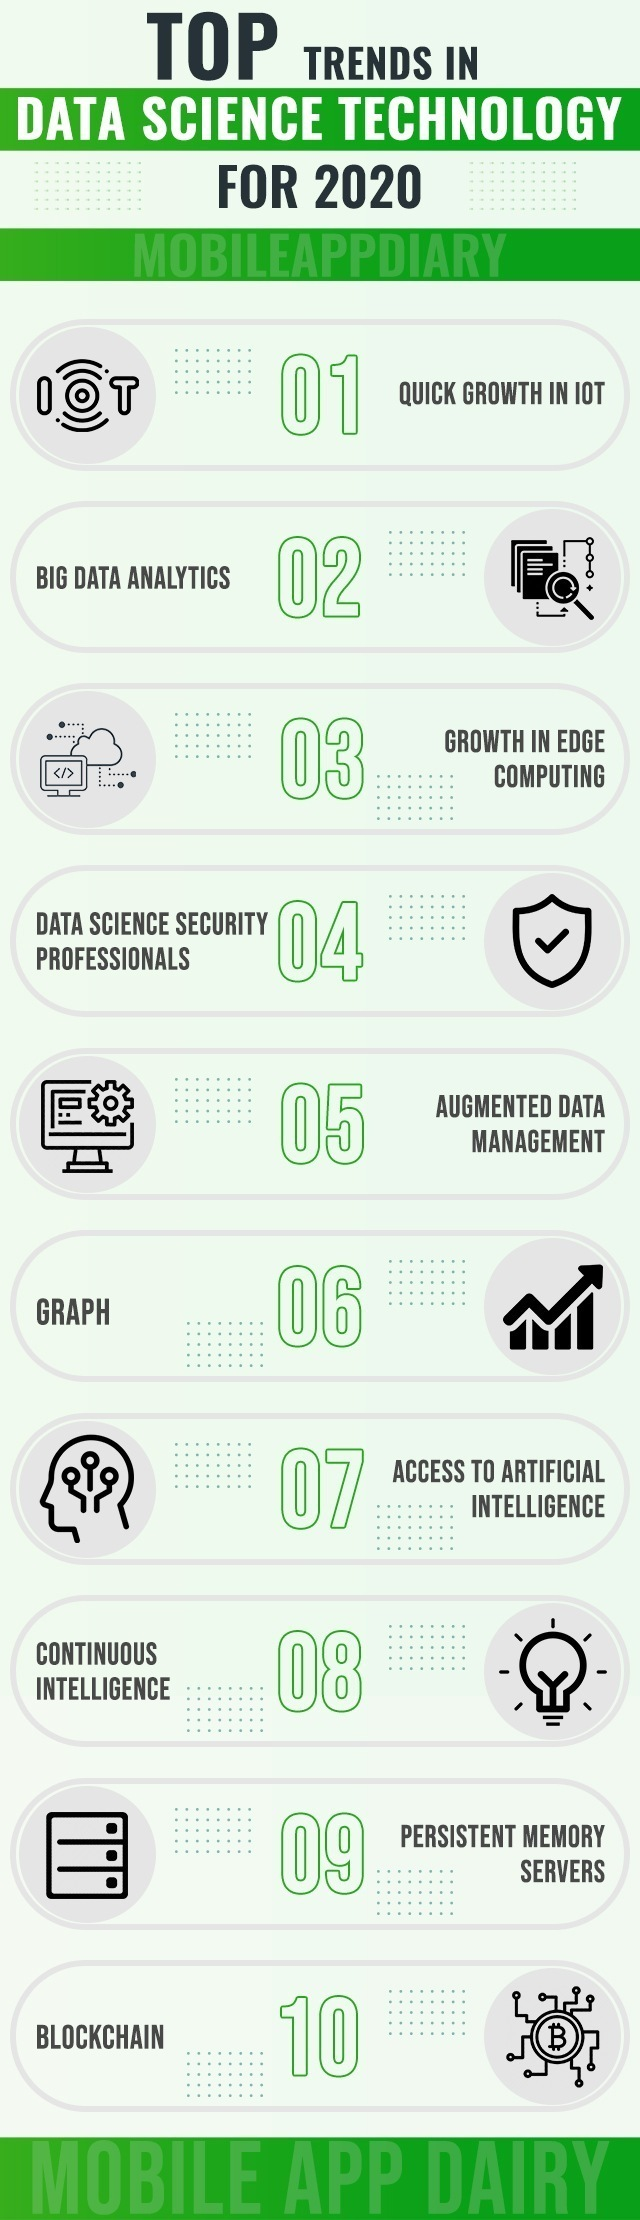 Top 10 Data Science Technology Trends